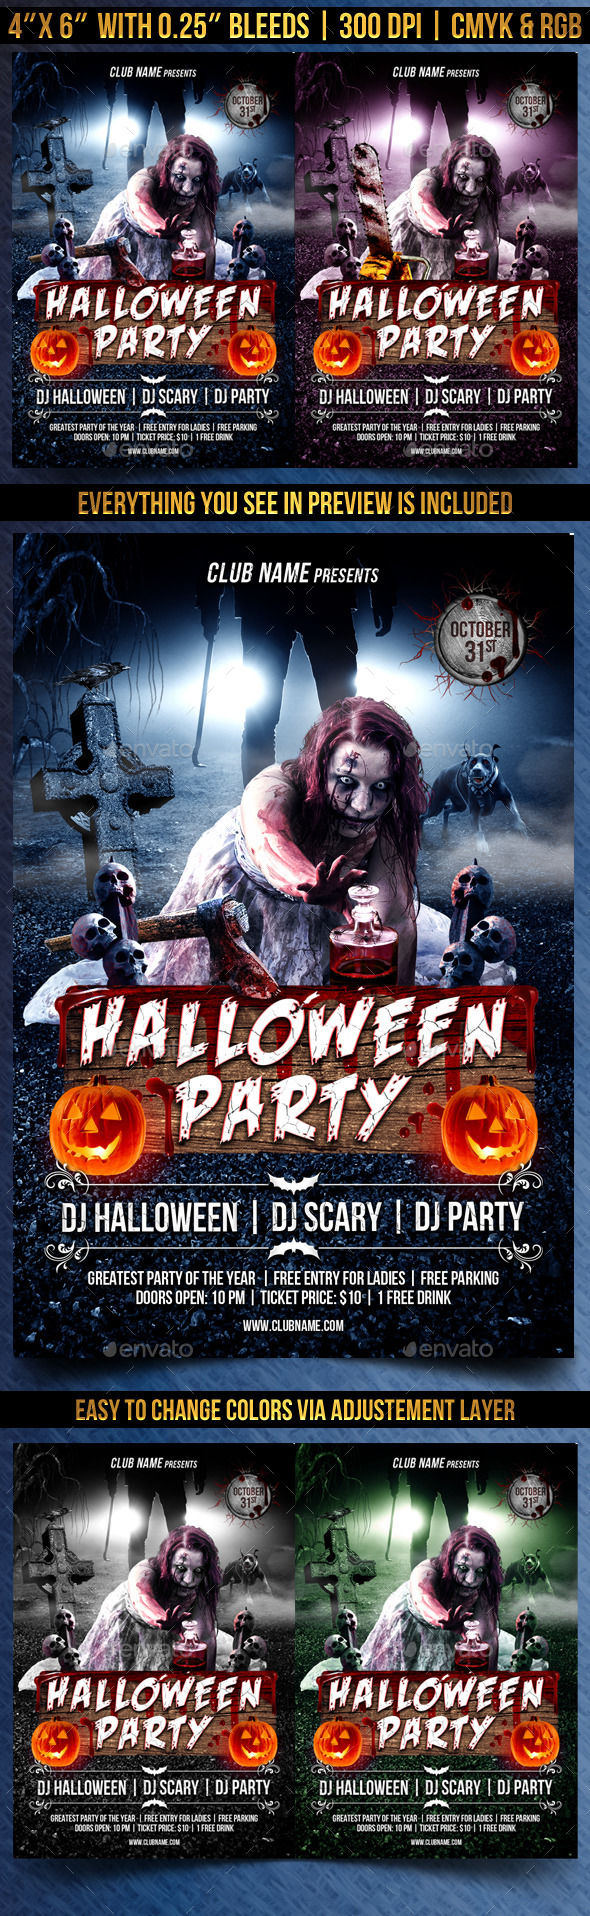 Scary Halloween Party Flyer by Gugulanul (Halloween party flyer)